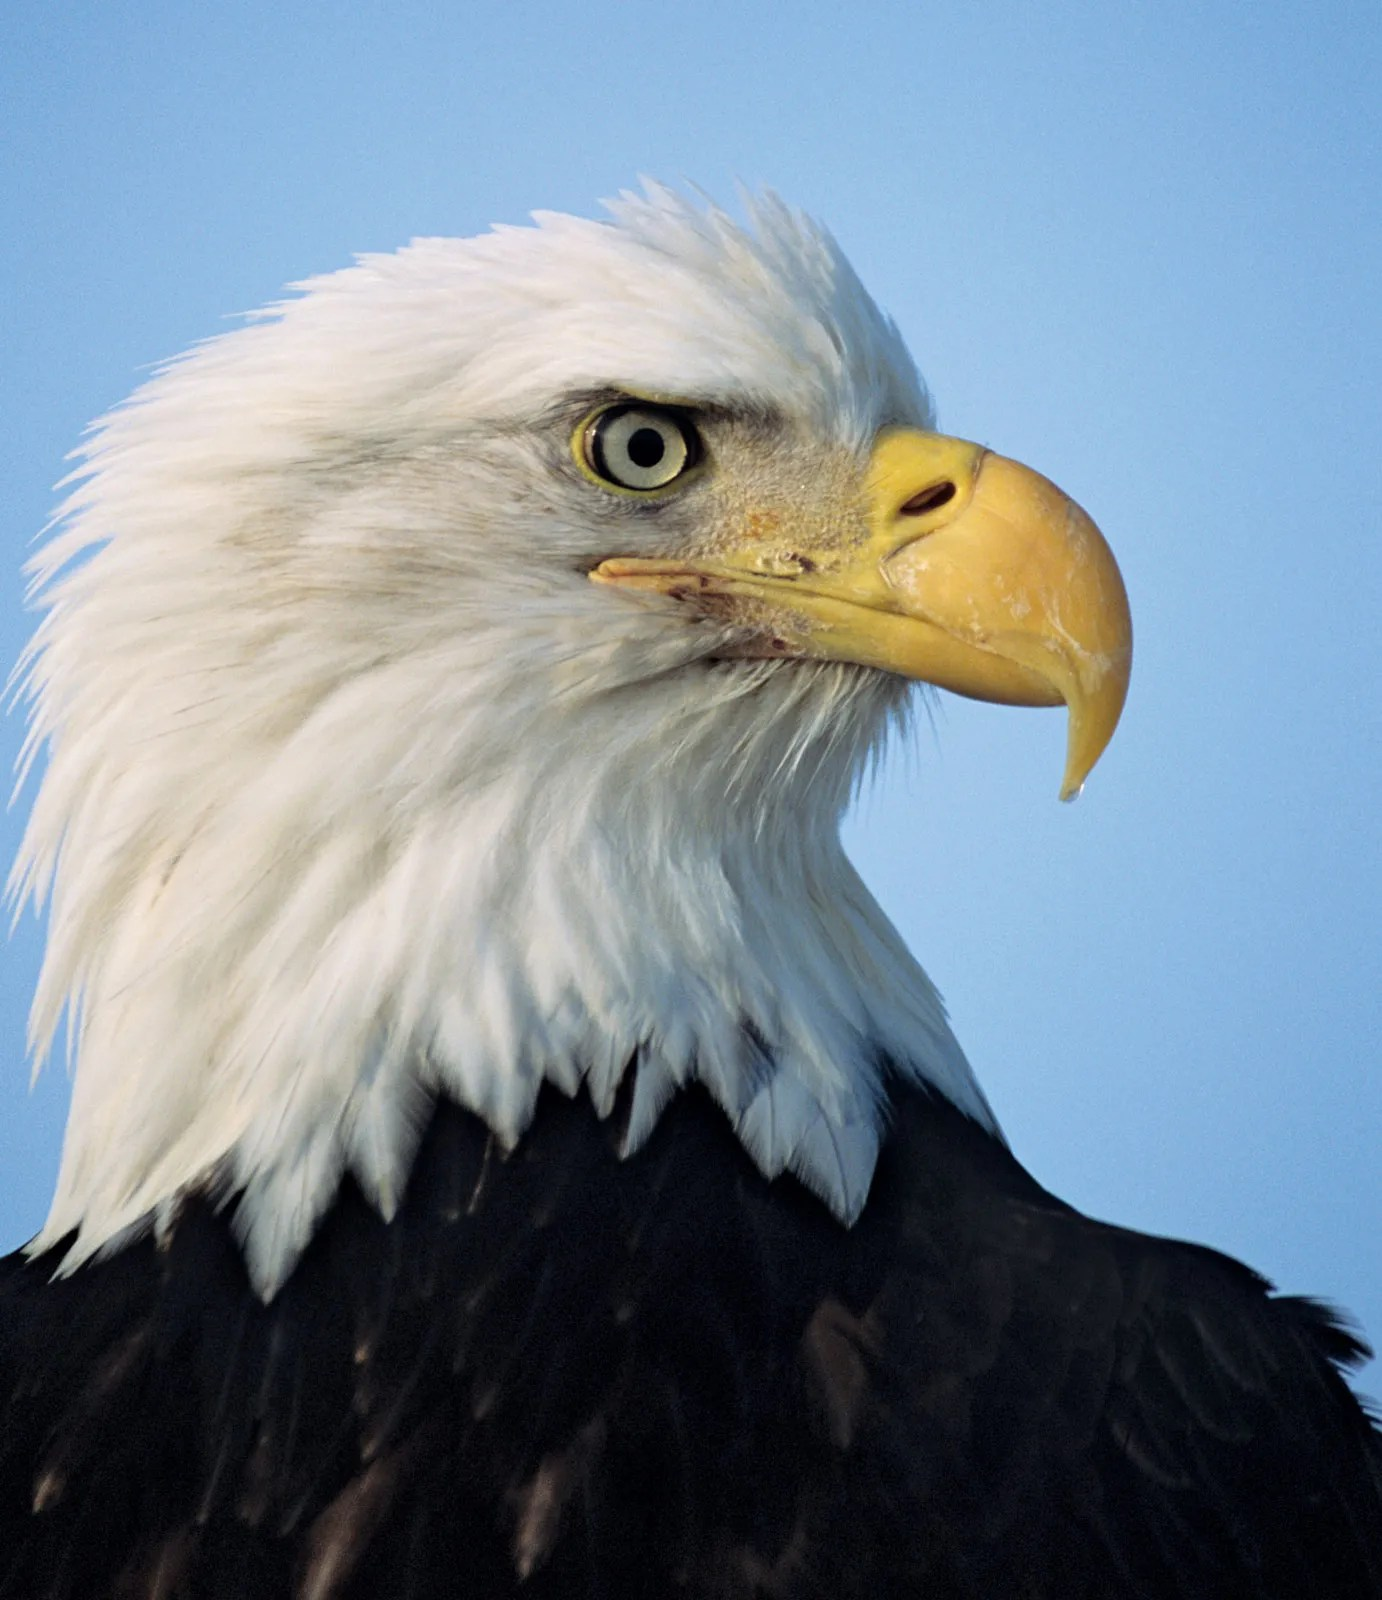 Bald Eagle Structural Adaptations